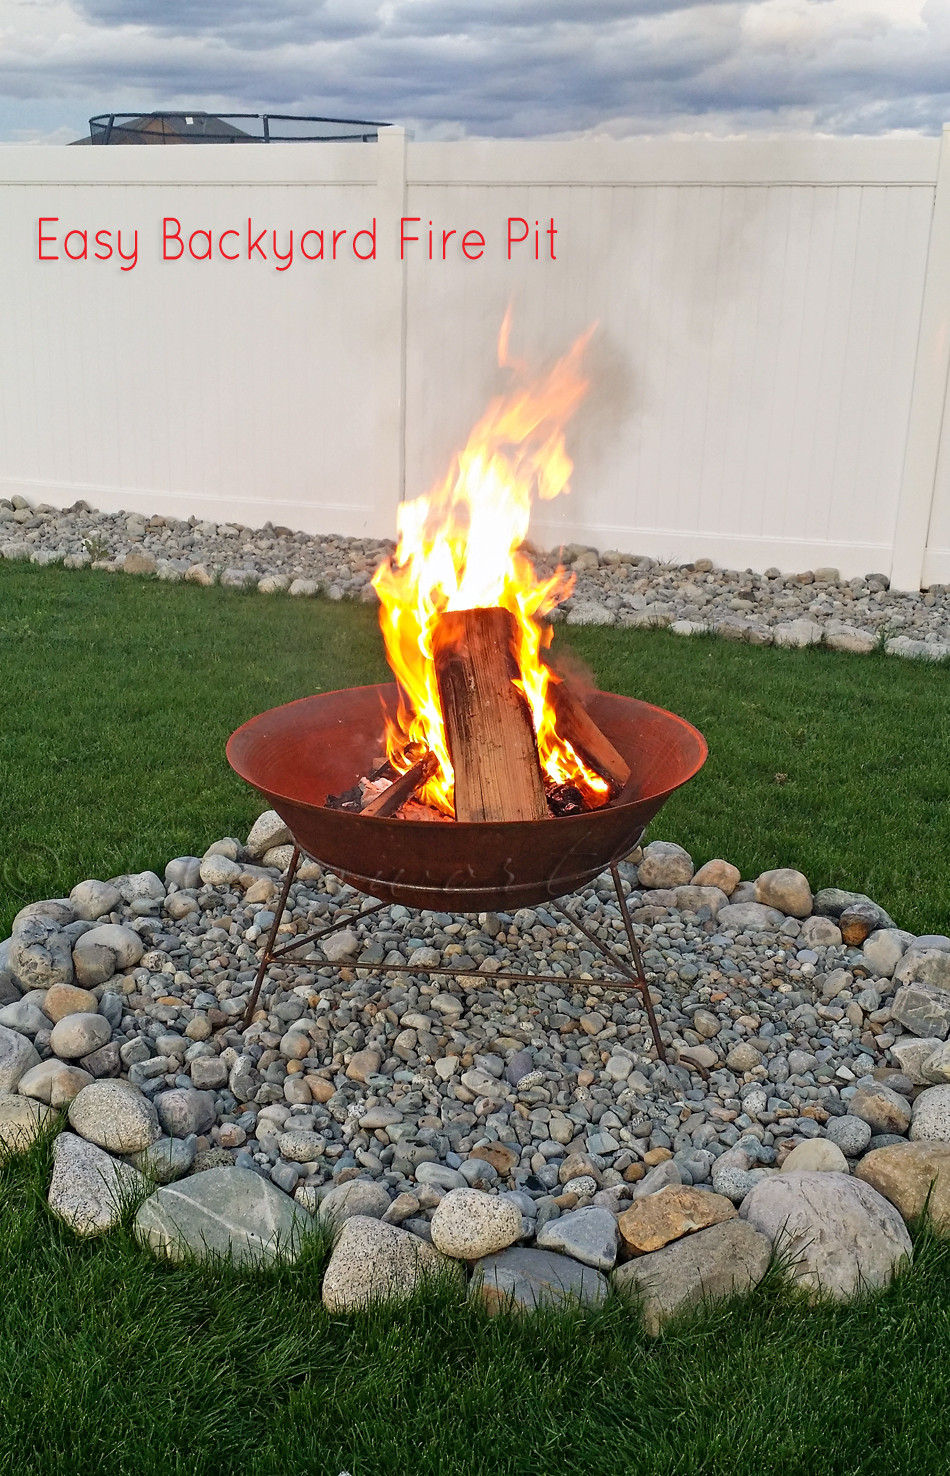 Best ideas about Backyard Fire Pit . Save or Pin Easy Backyard Fire Pit In Less than 30 Minutes Now.